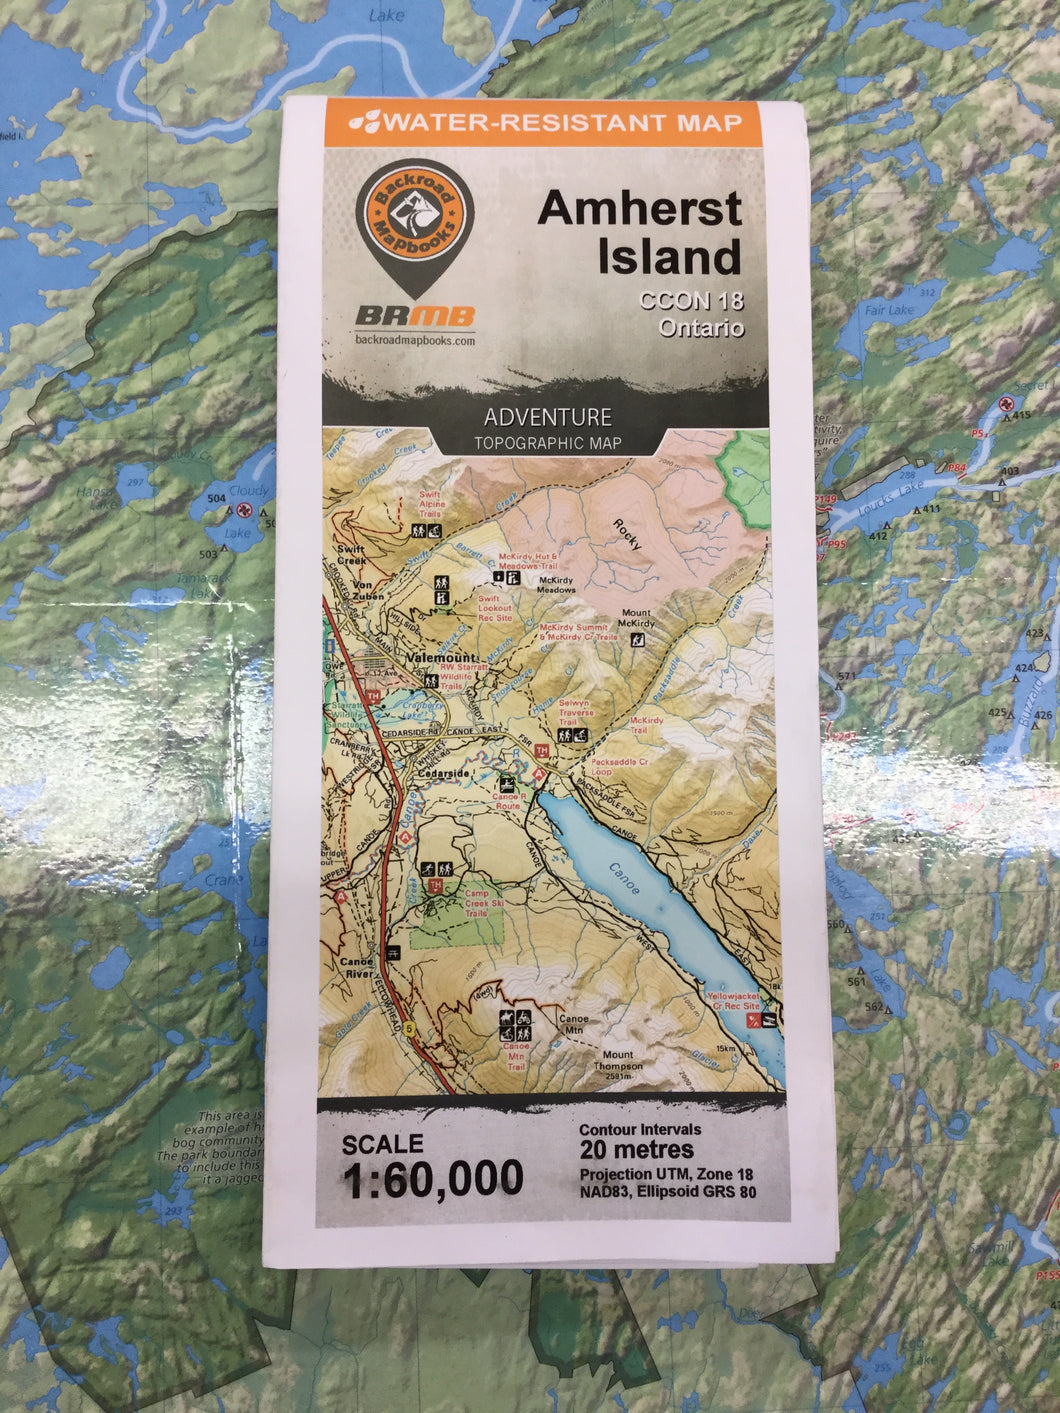 Amherst Island topographic map by Backroad Mapbooks